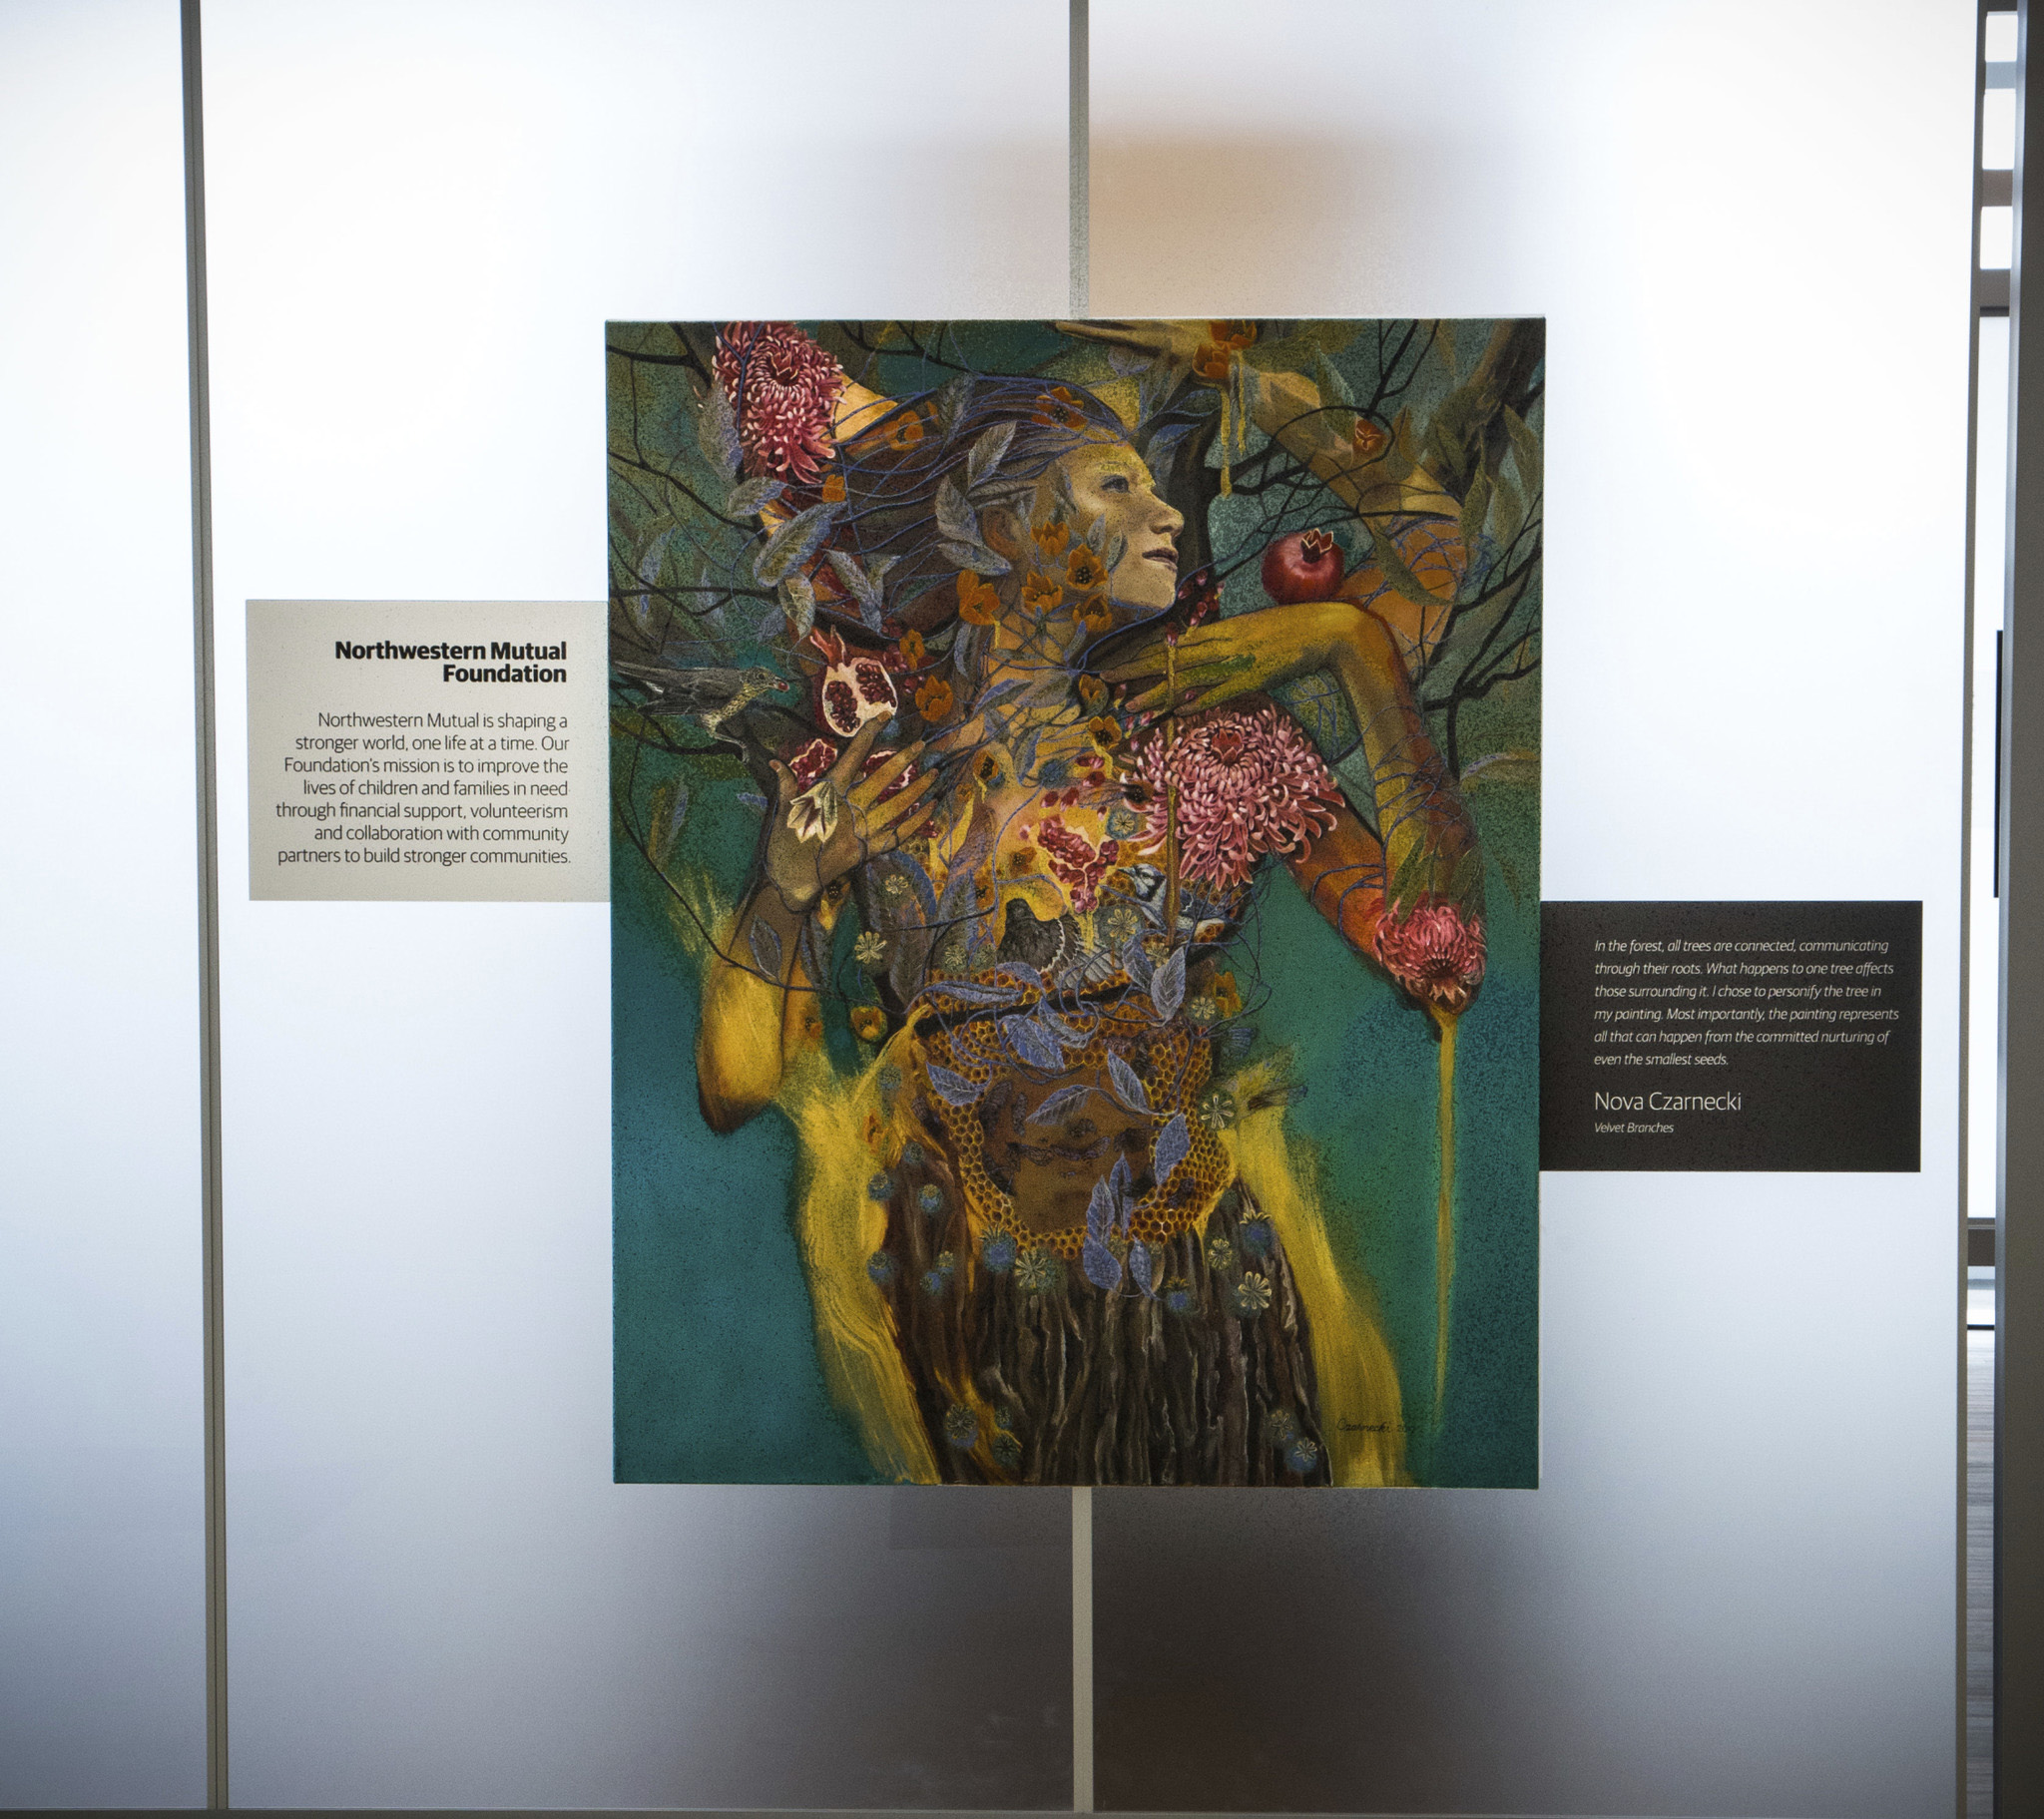 Nova Czarnecki chose to represent the Northwestern Mutual Foundation symbolically through nature imagery, showcasing the connections between the Foundation, its partners and the deep roots these organizations have in the community.